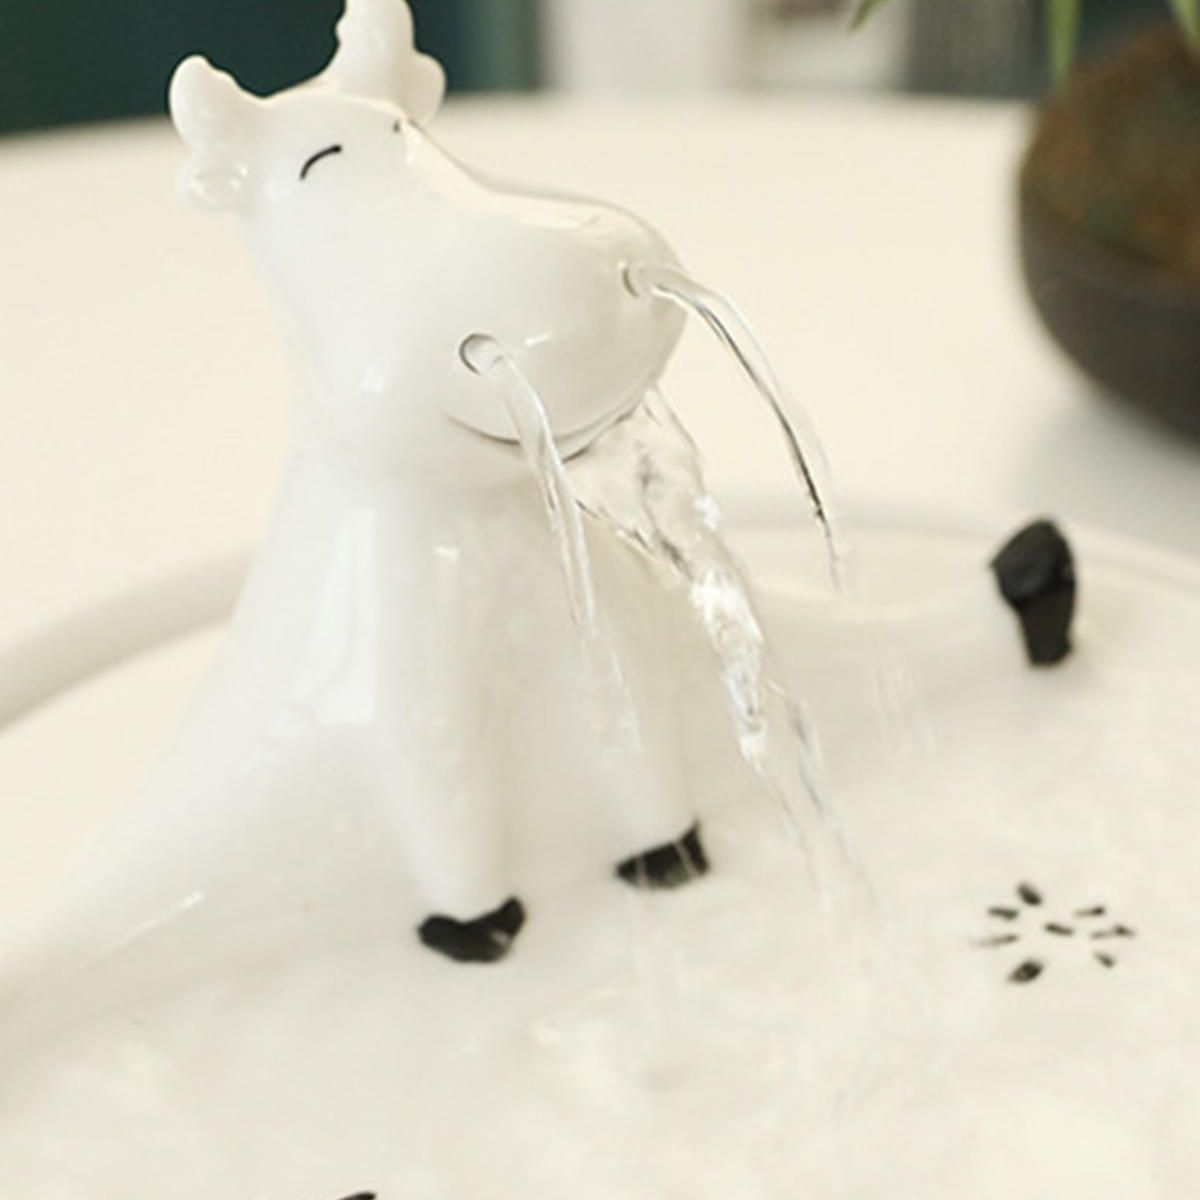 OEB US$35.18 Pet Ceramic Electric Automatic Water Fountain Dog Cat Drinking Bowl Tank Water Dispenser Pump